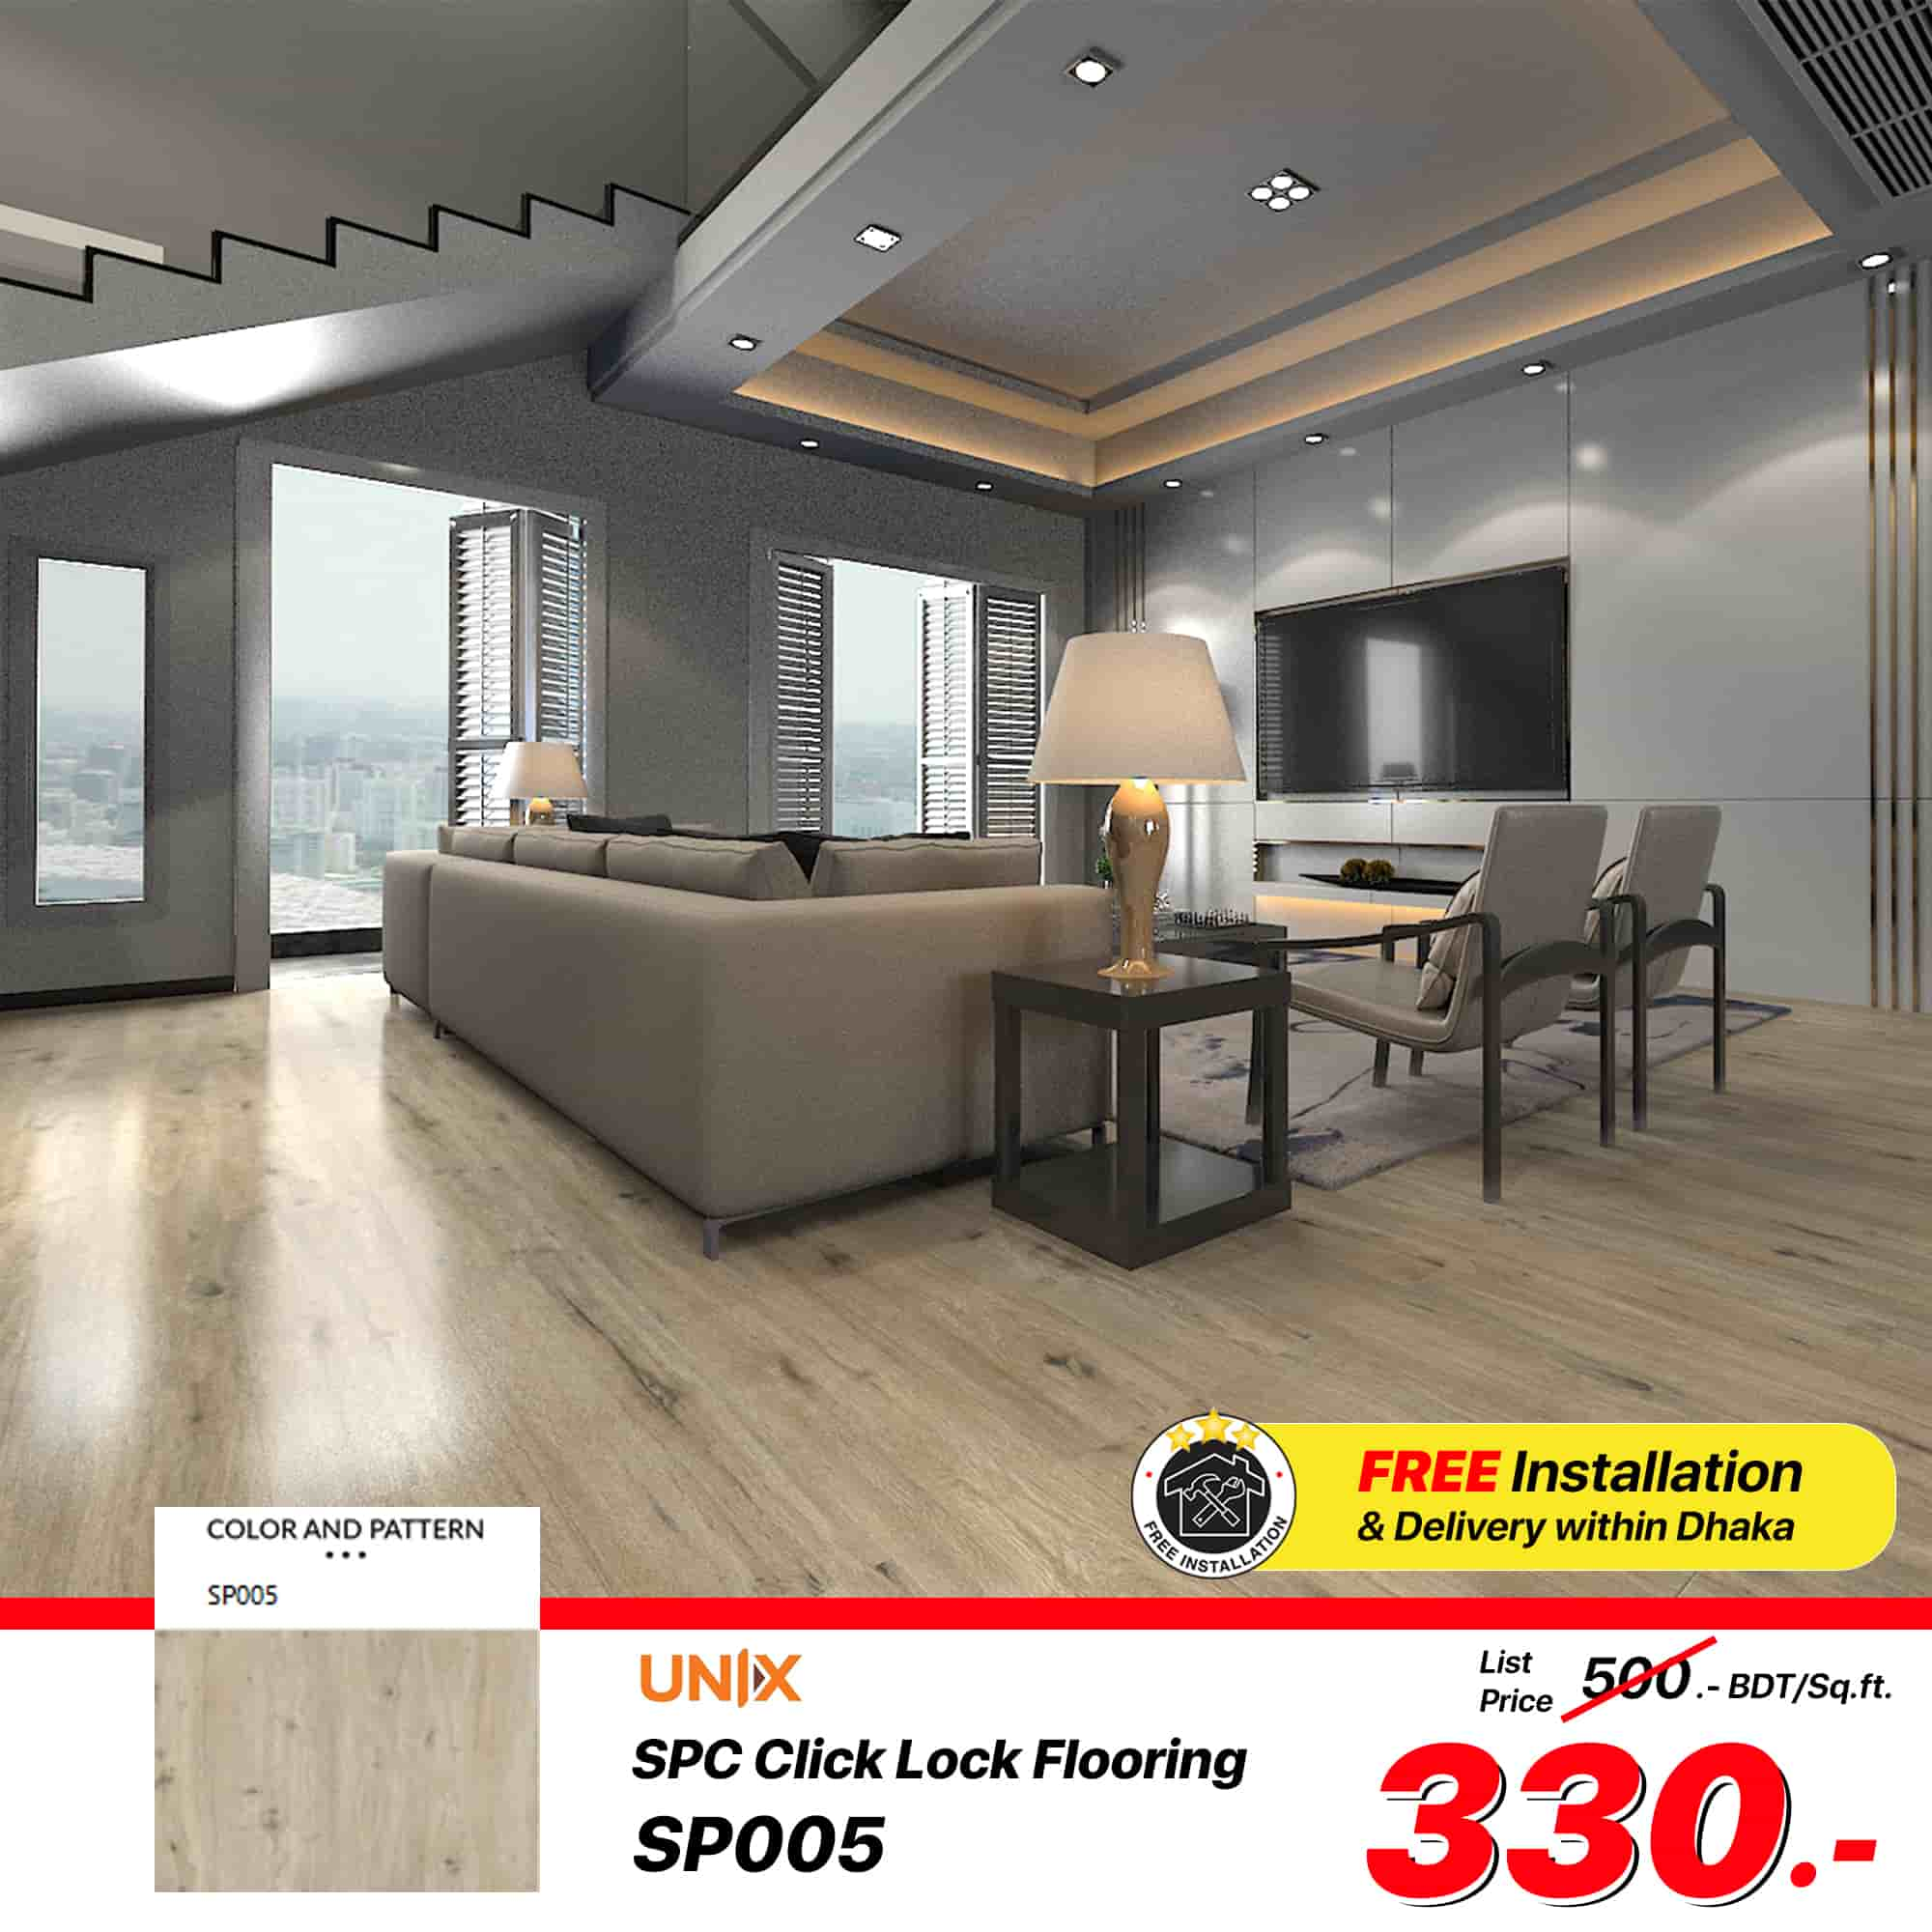 ZMARTBUILD SPC Floor -- SP005 Ads - ver 3